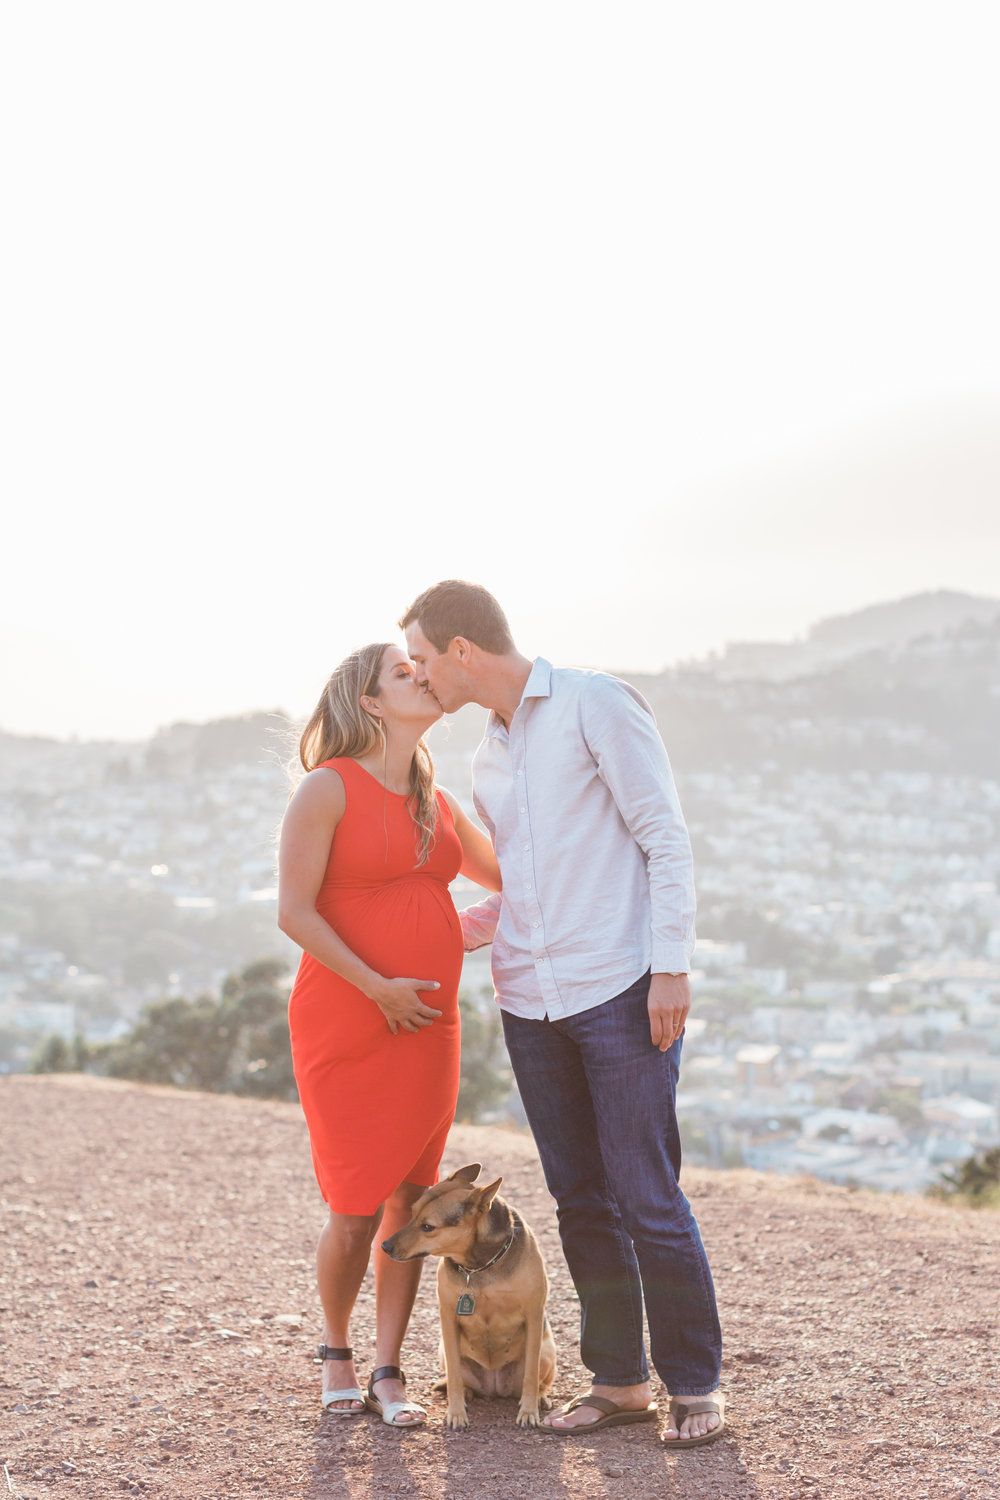 bernal-hill-san-francisco-maternity-pictures-5.jpg